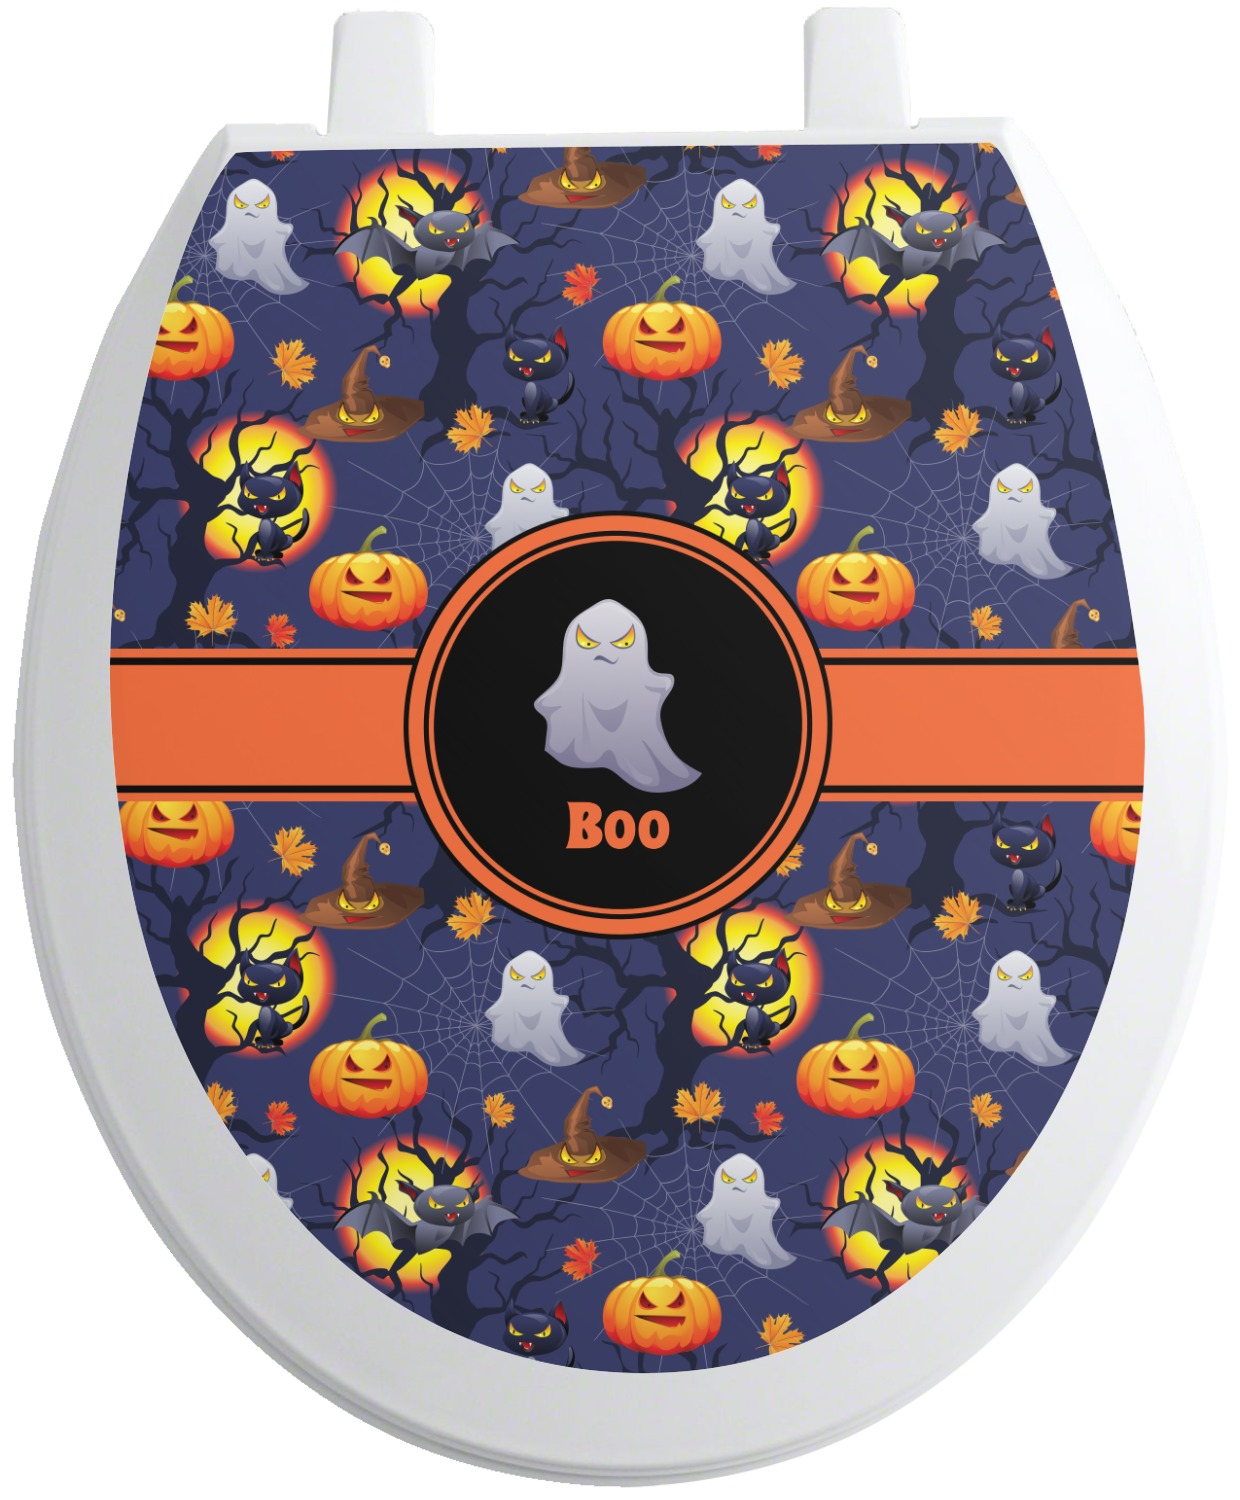 Halloween Night Toilet Seat Decal Personalized